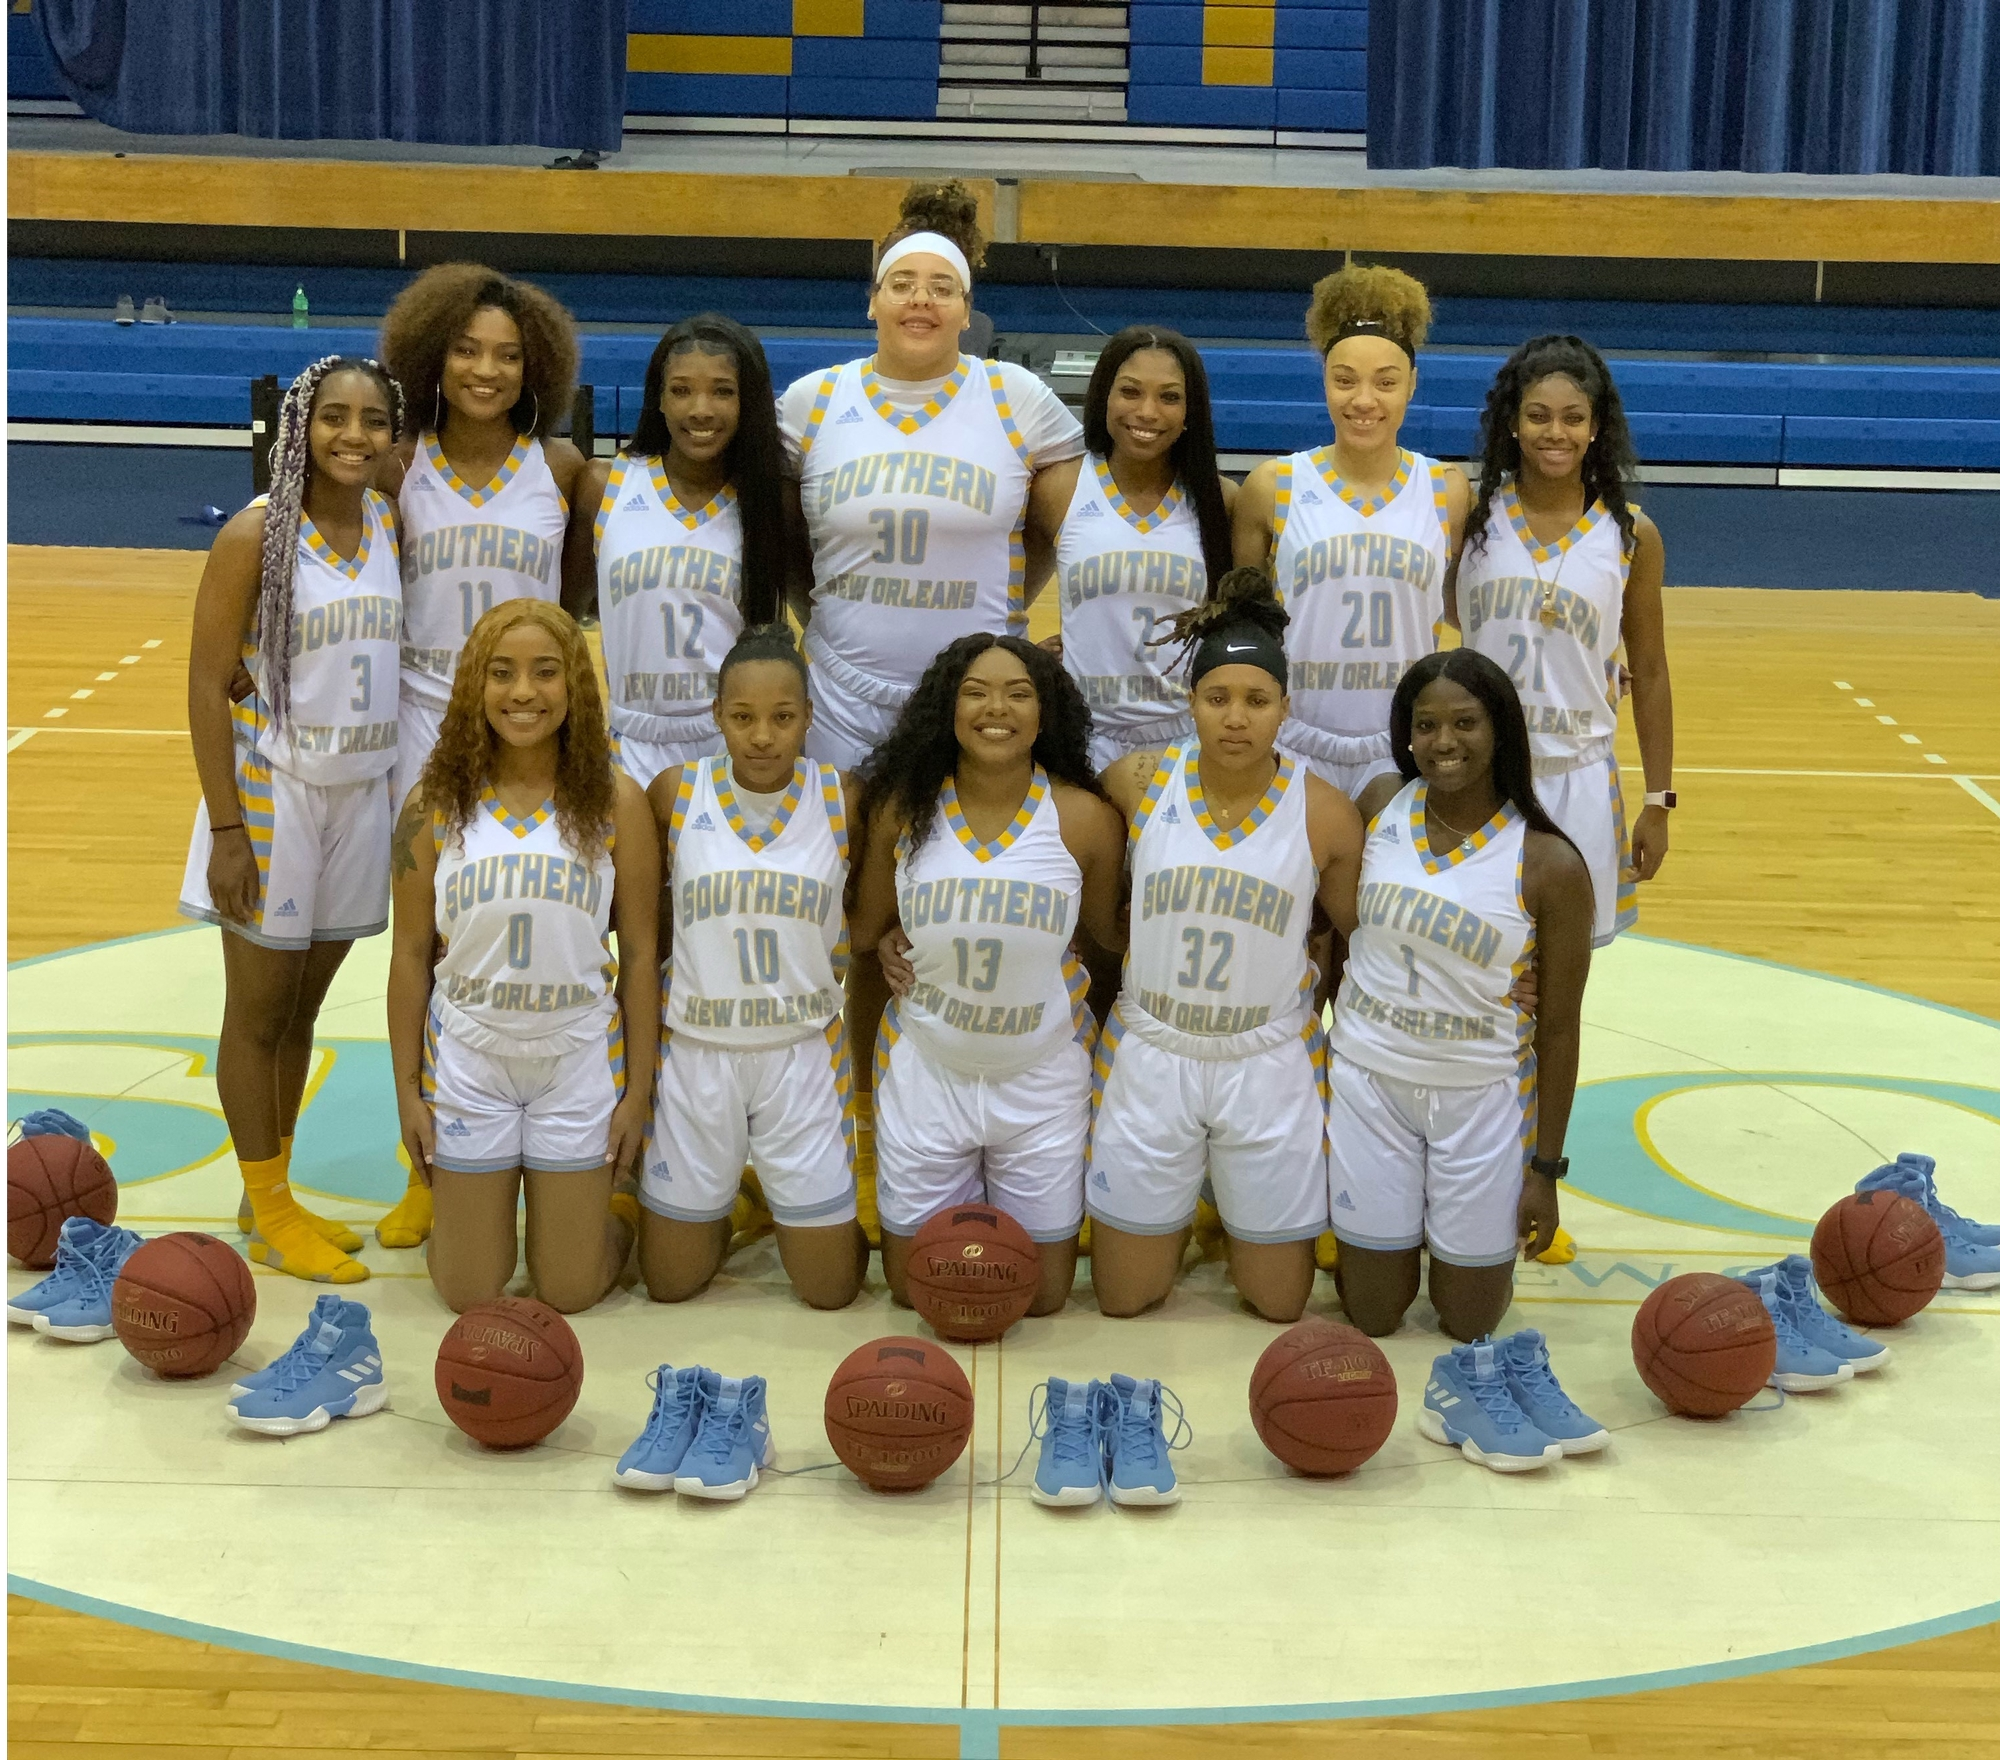 The 2018-2019 Southern University at New Orleans' Women's Basketball Team